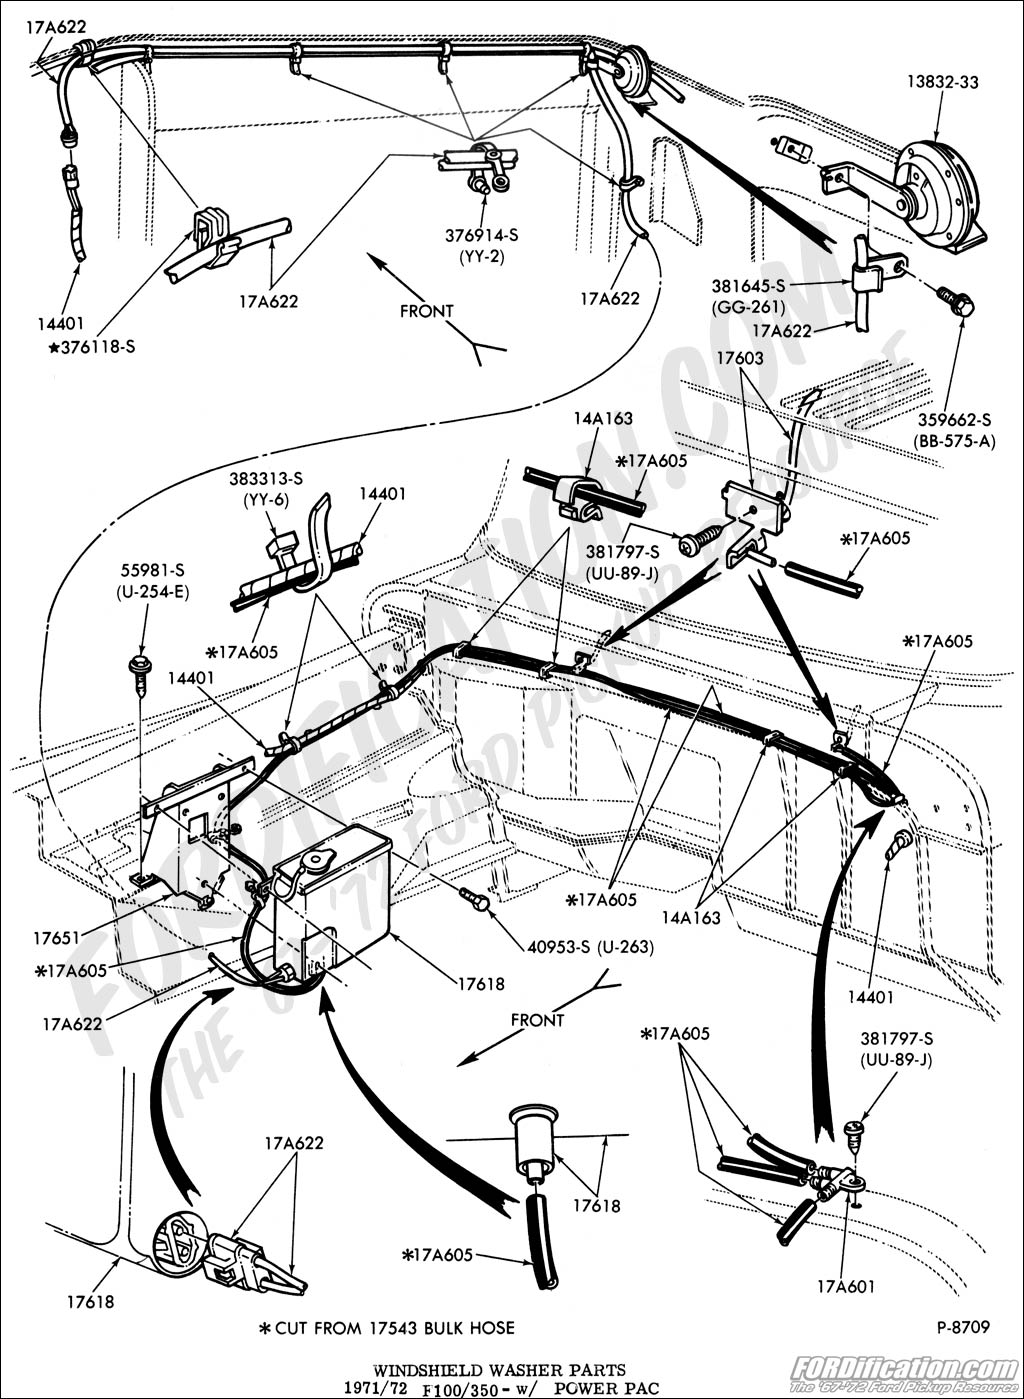 Chevy Dana 60 Rear Axle Diagram besides Ford 5 4 Heater Hose Diagram besides Catalog3 furthermore 201547546839 together with Schematics i. on 2010 camaro engine diagram